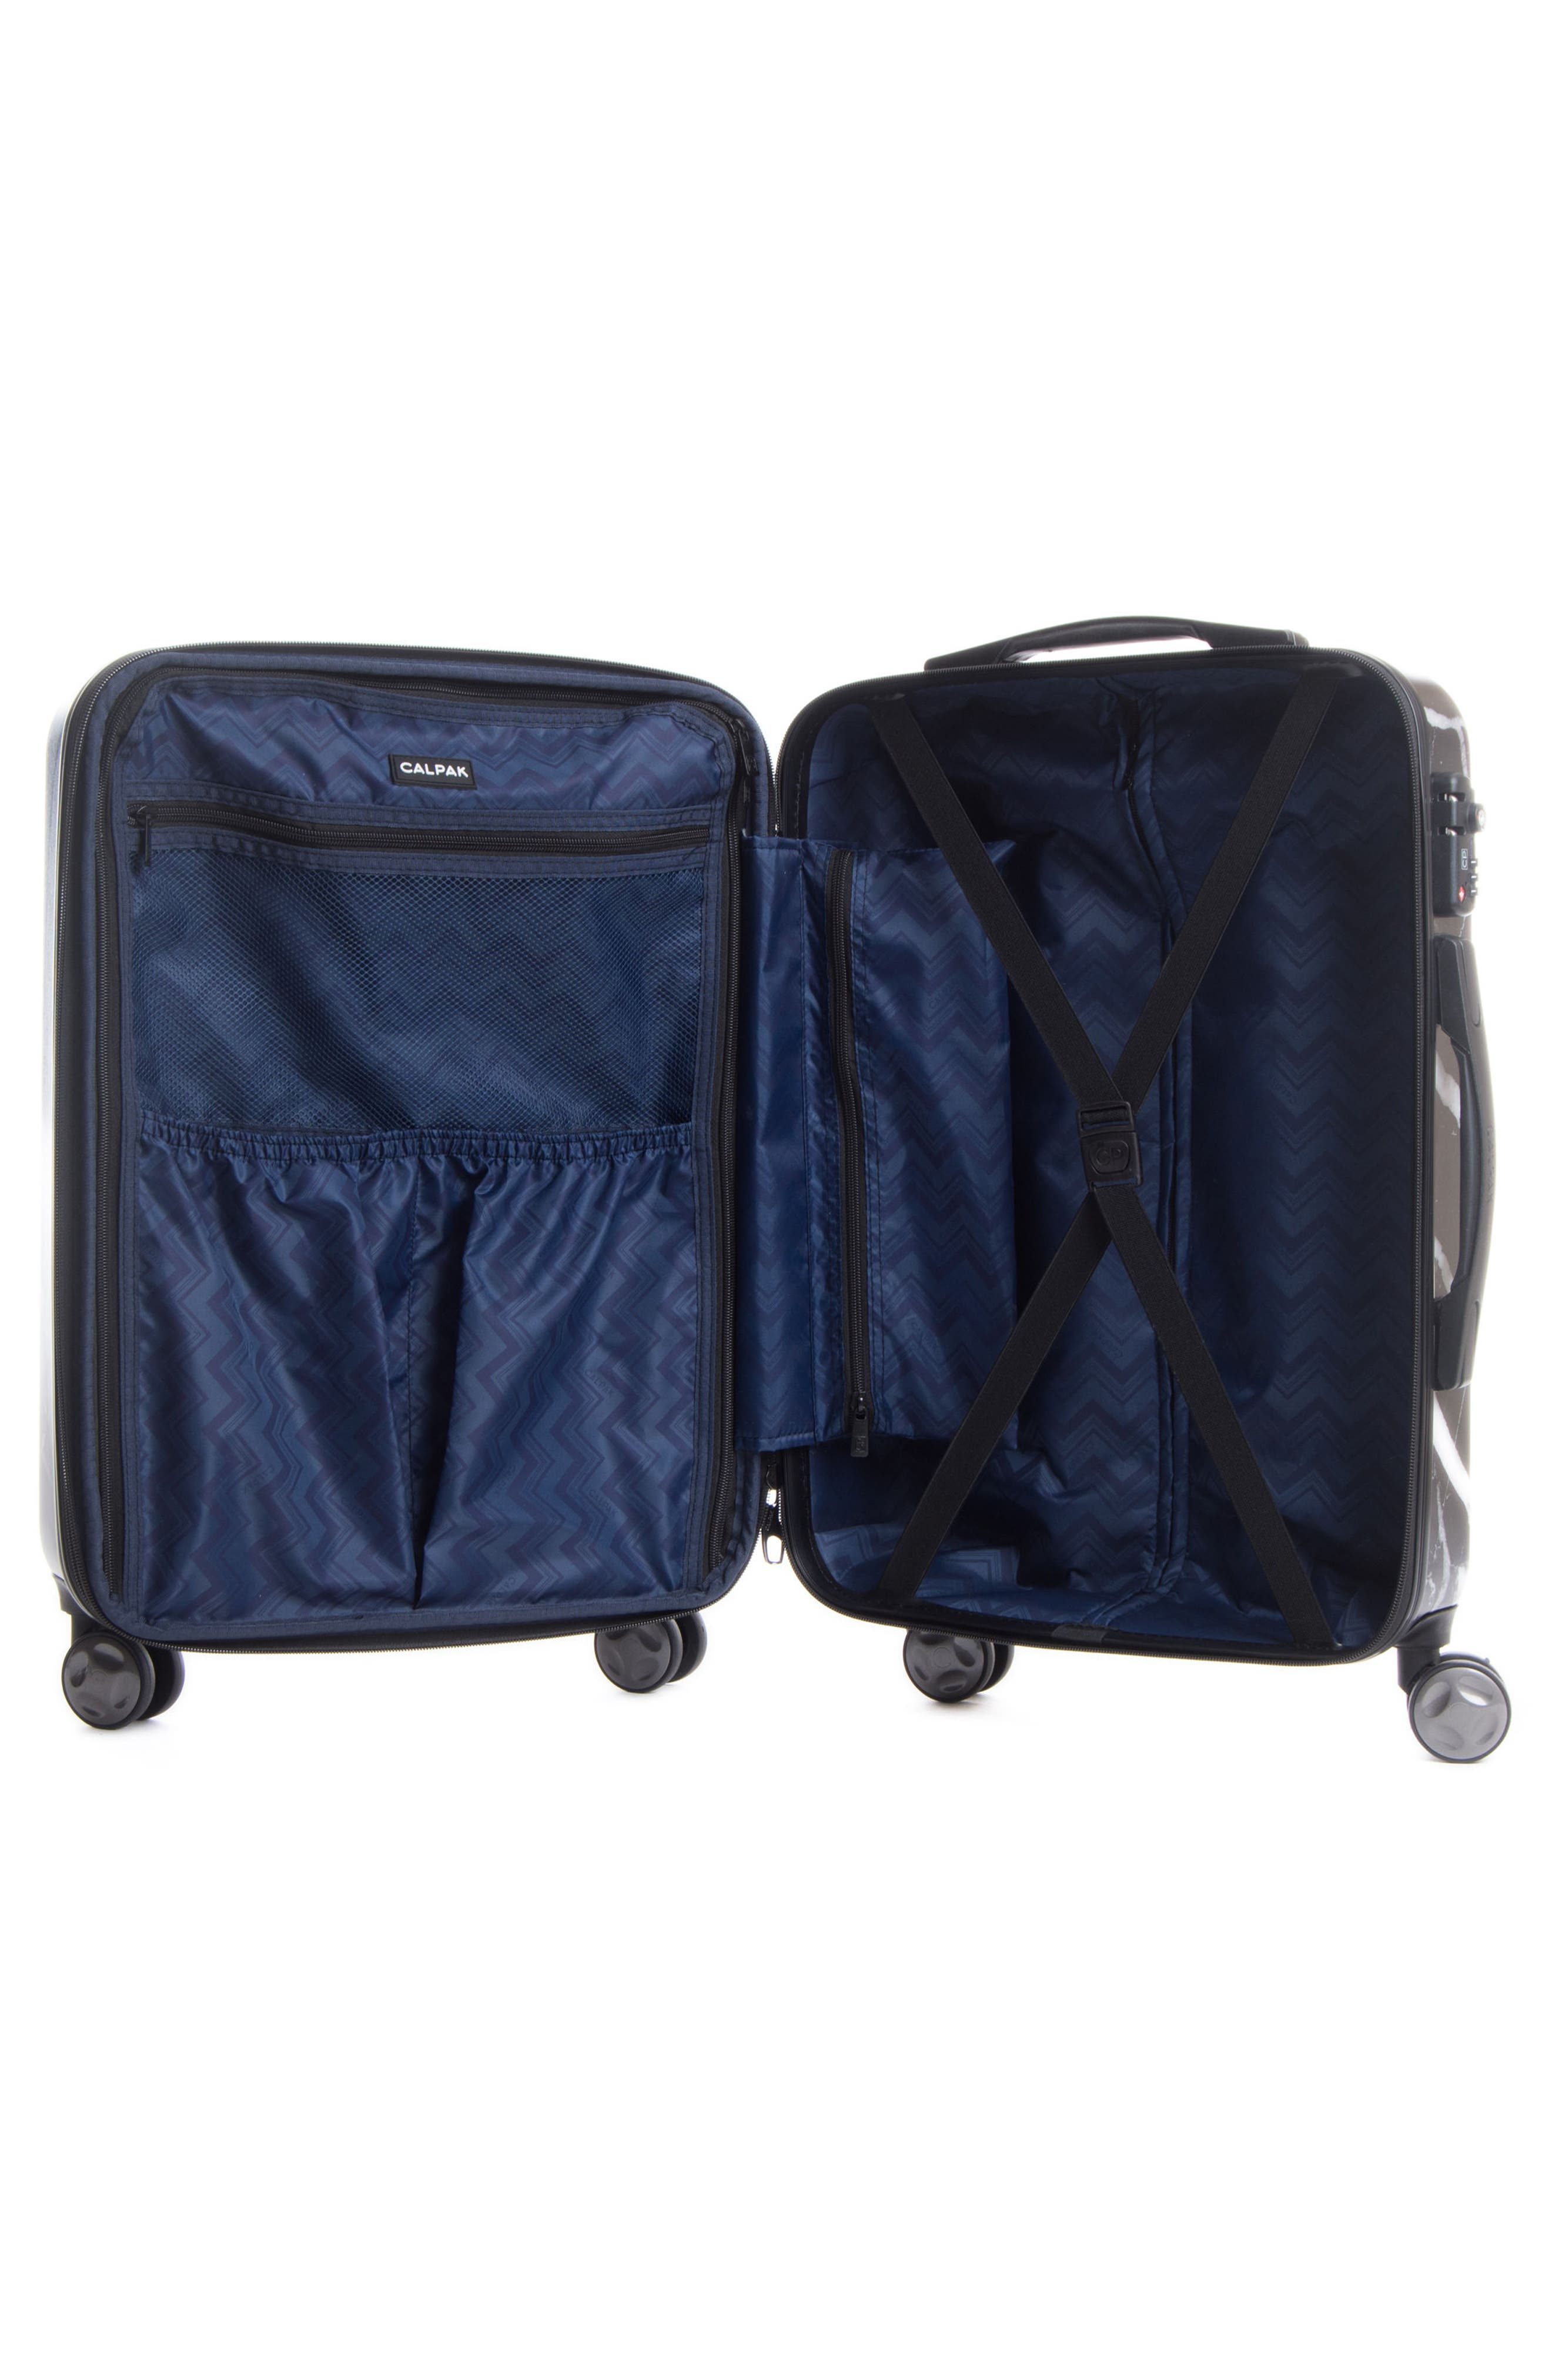 Astyll 3-Piece Marbled Luggage Set,                             Alternate thumbnail 7, color,                             BLACK